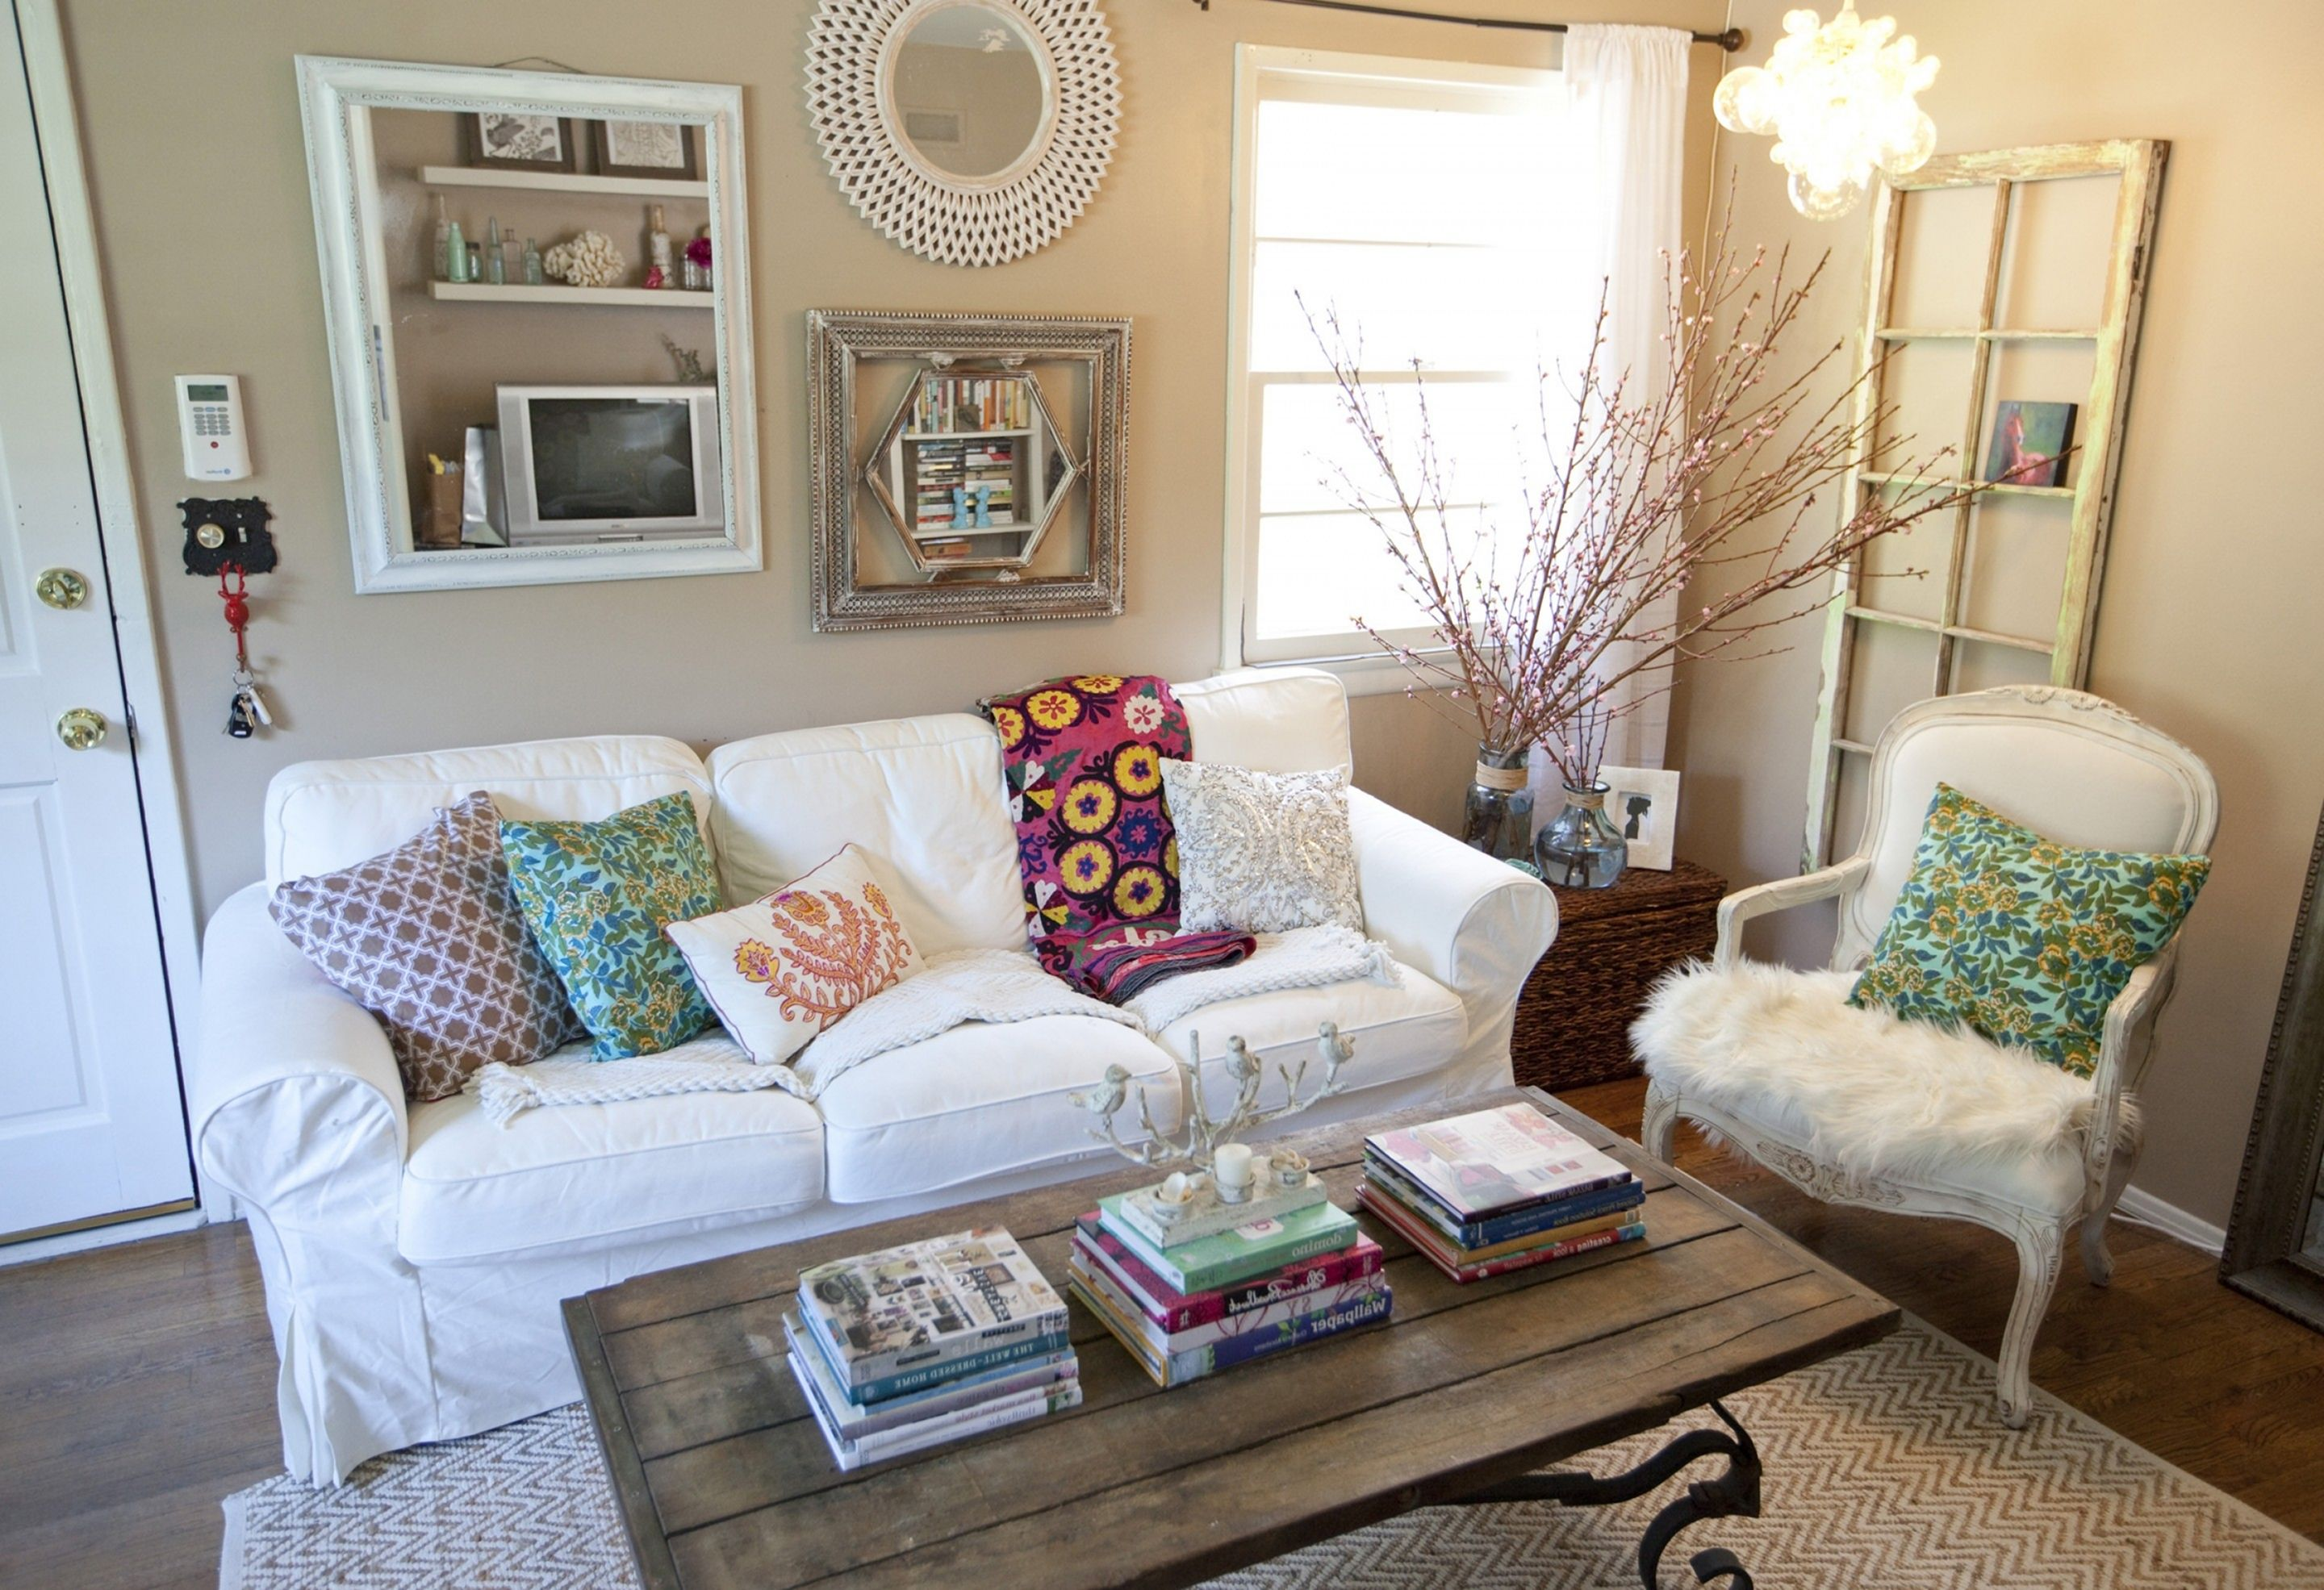 diy living room grey and white chair 27 extraordinary decorations that will increase its beautiful decorating ideas for apartments via creatodesigns com